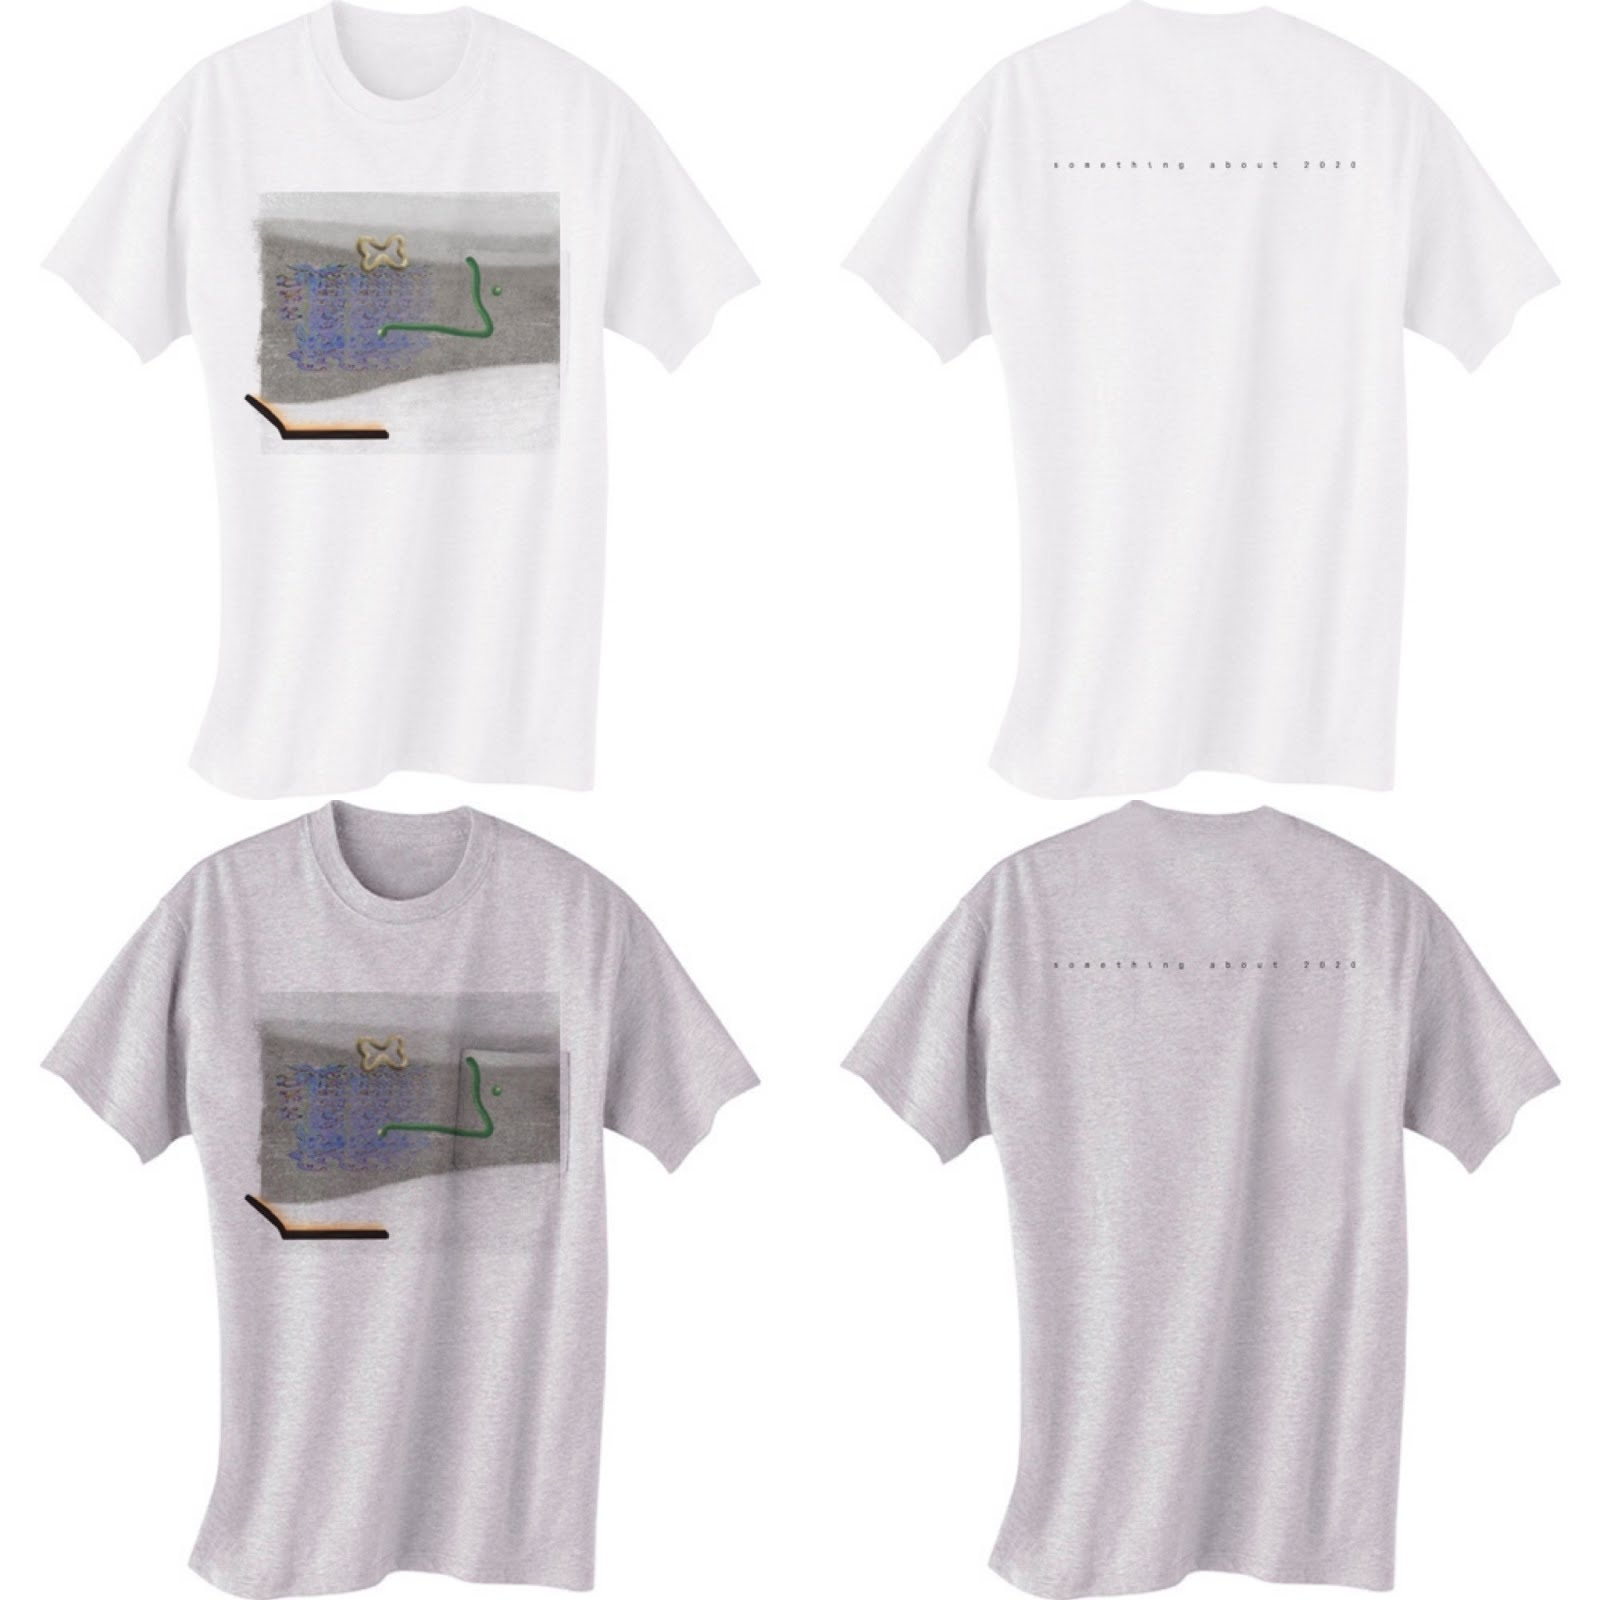 """Innervisions""T-shirt"